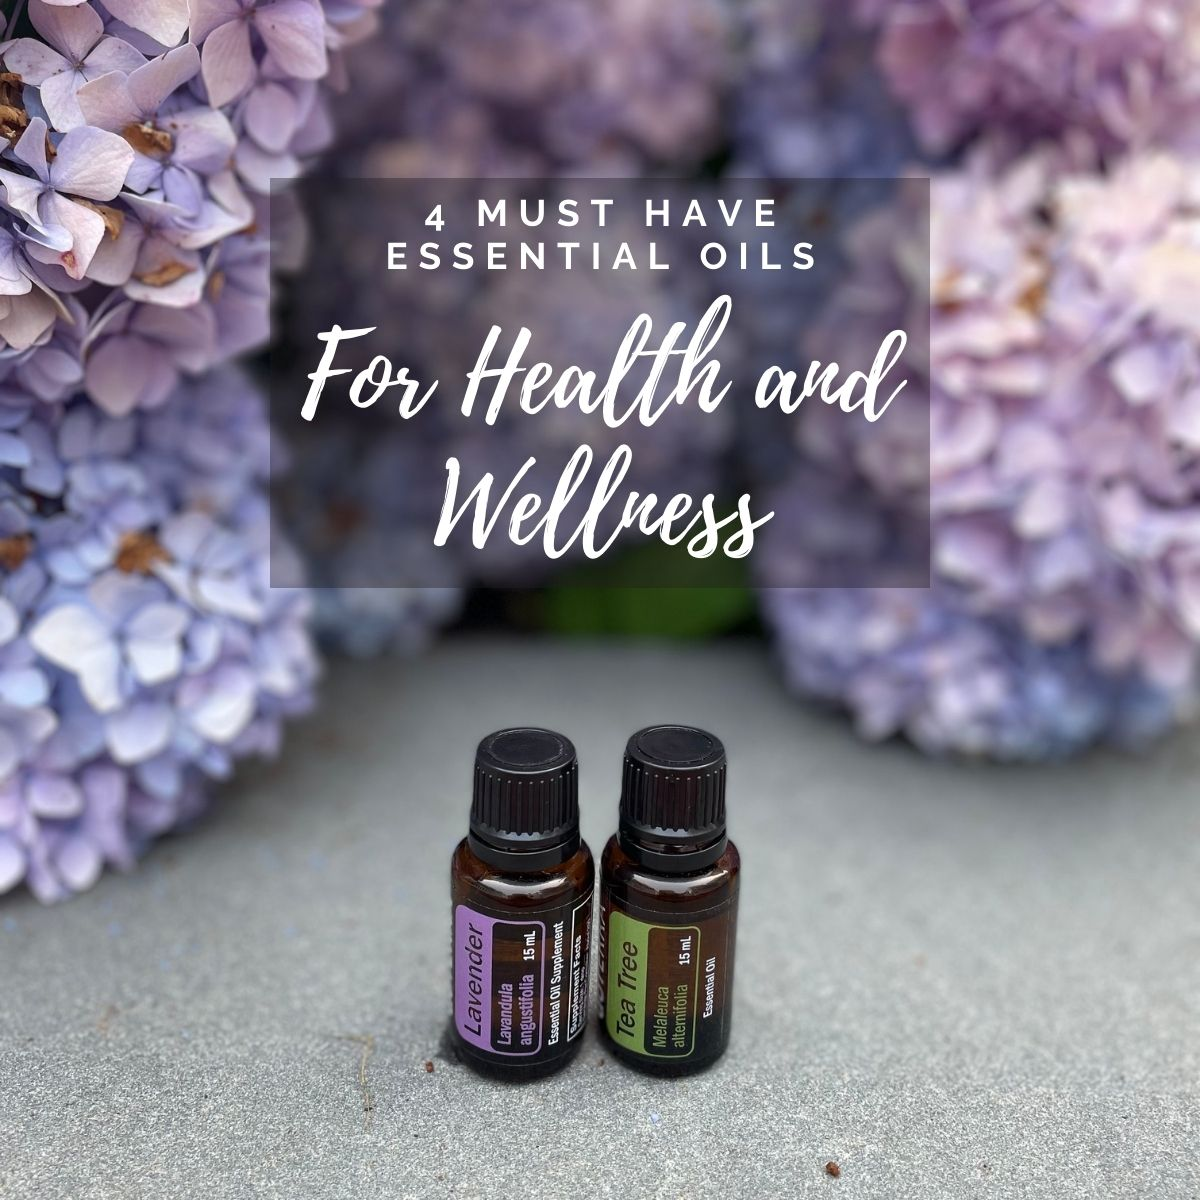 4 must have essential oils for health and wellness image